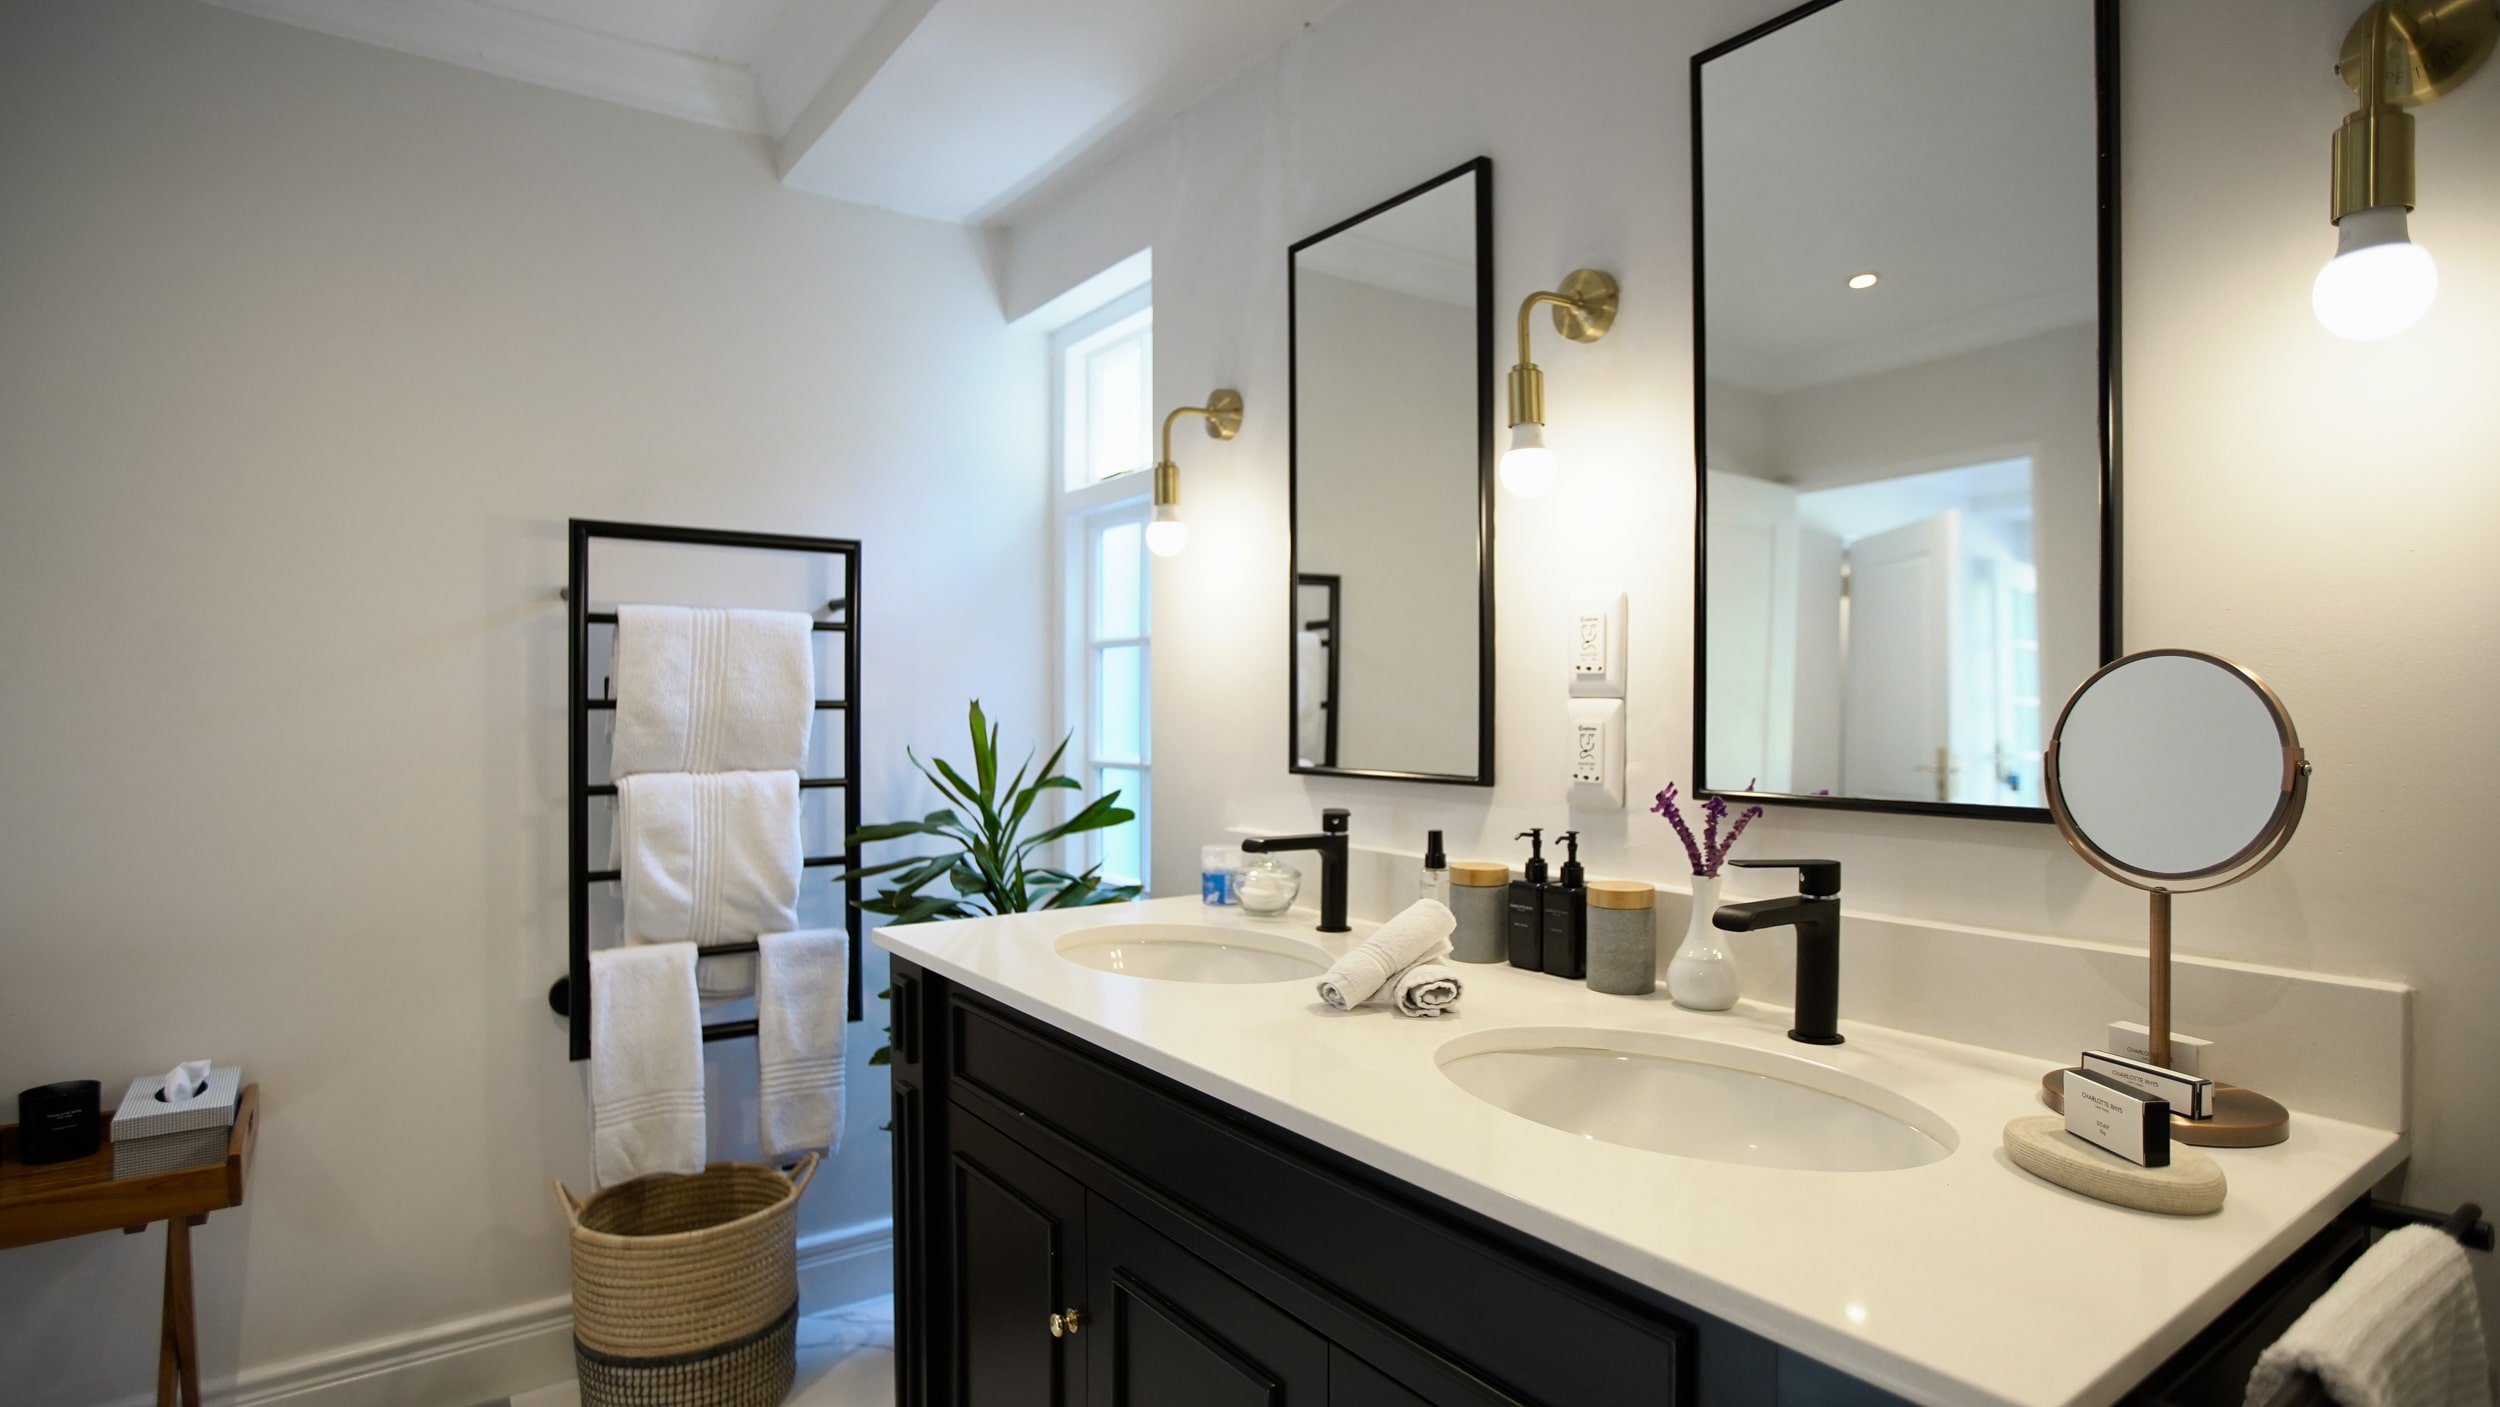 Two sinks and mirrors with fresh white towels in Bathroom in Manor room bedroom suite at Villa Coloniale